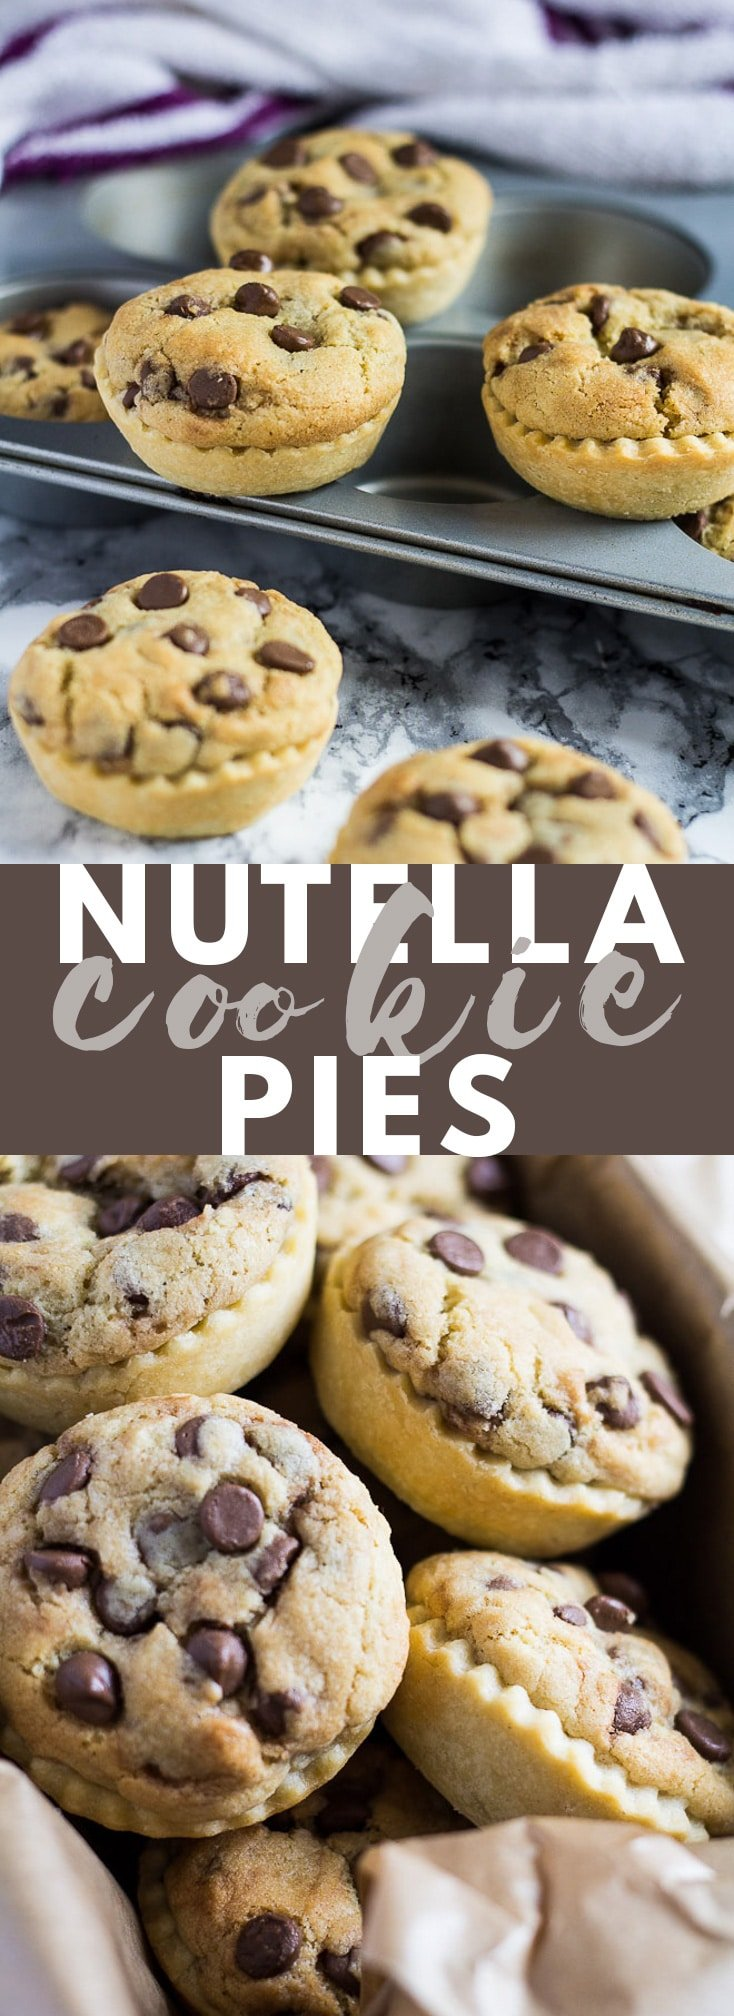 Nutella Stuffed Chocolate Chip Cookie Pies - These mini pies are made with an all-butter pastry stuffed with Nutella and topped with soft, and chewy chocolate chip cookie! #nutella #nutellarecipes #chocolatechipcookies #cookierecipes